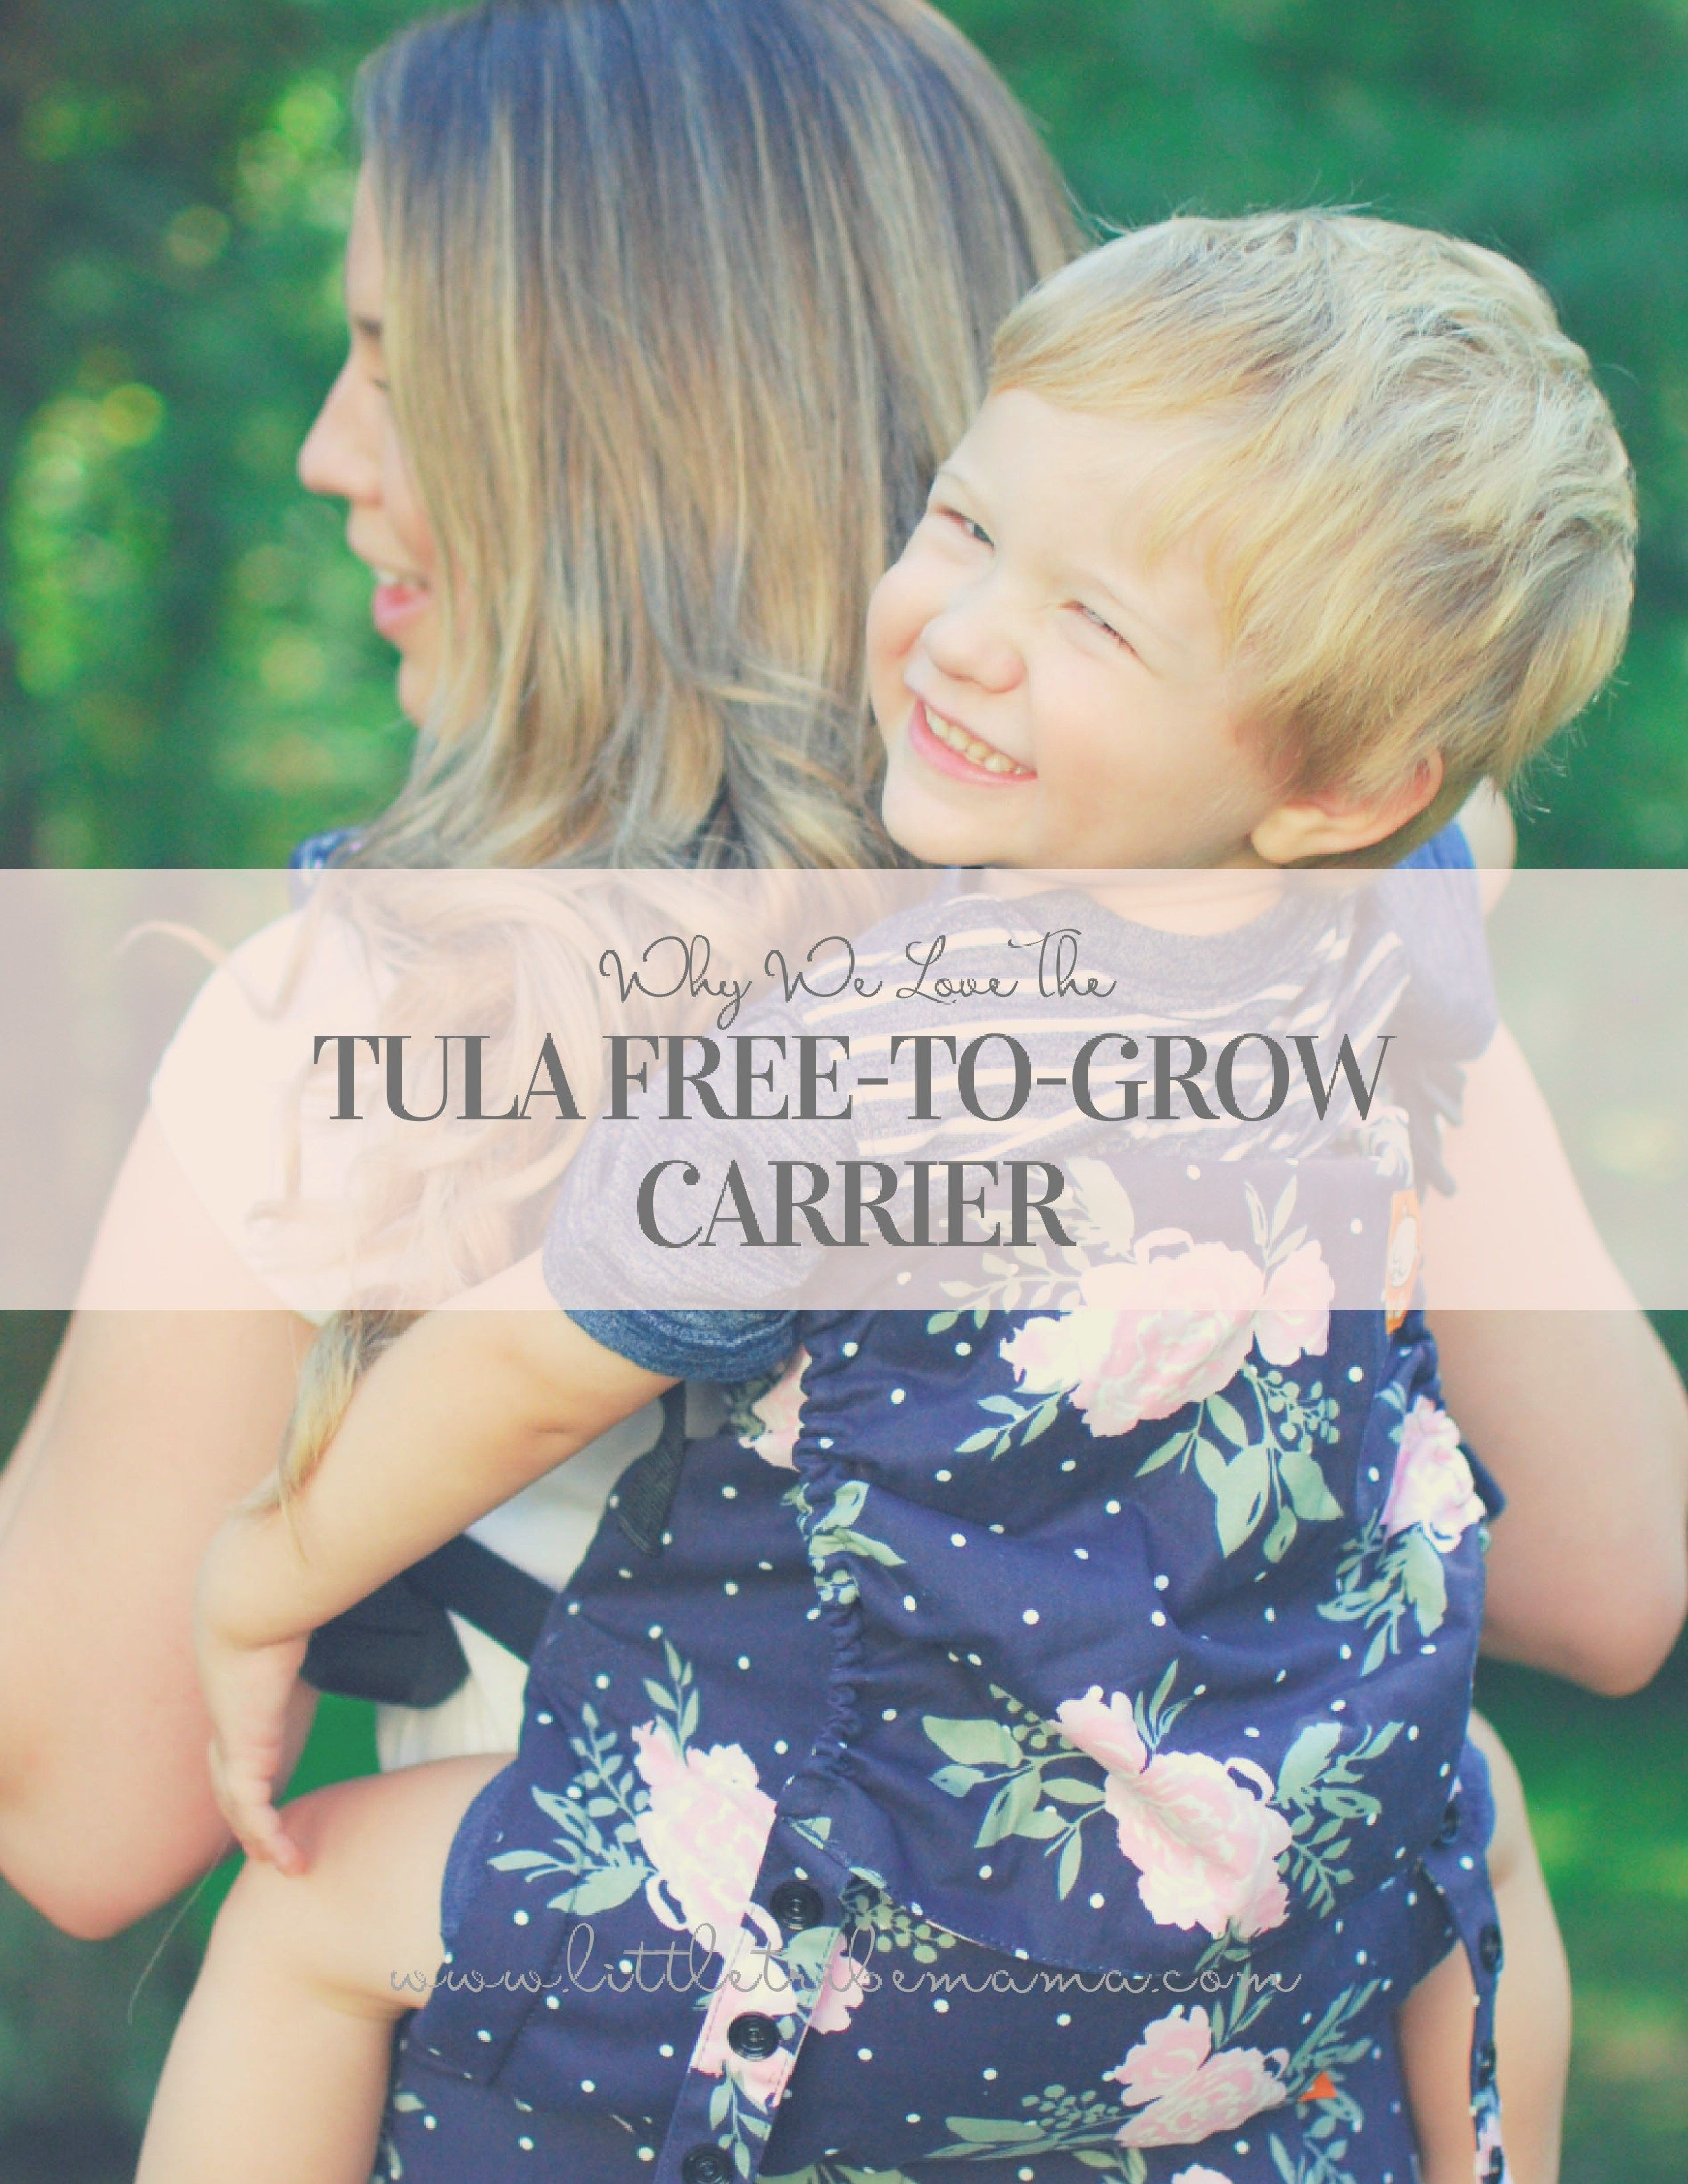 cbedb19878f Tula Free-to-Grow  The ONLY carrier you need for your collection ...